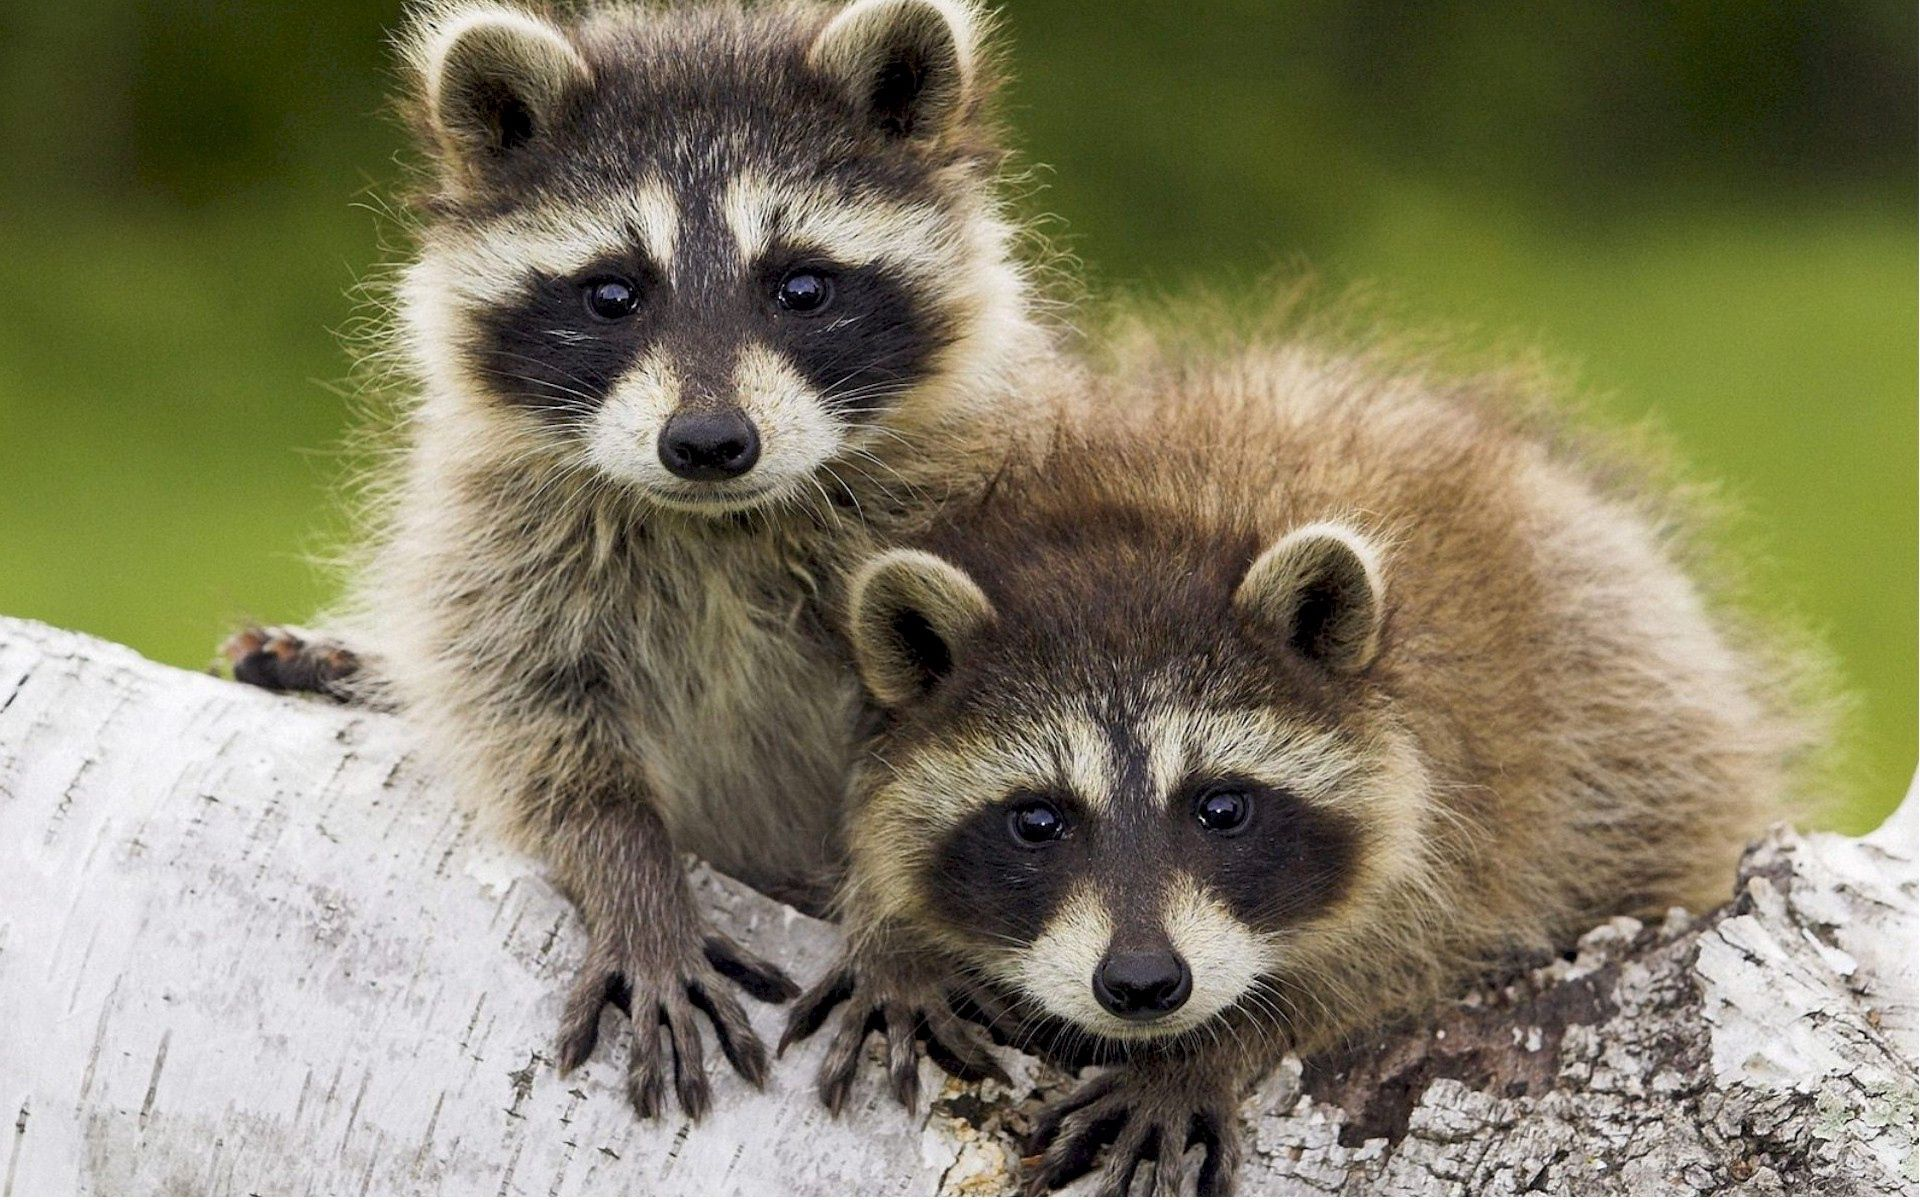 106774 download wallpaper Animals, Raccoons, Couple, Pair, Stroll, Log screensavers and pictures for free